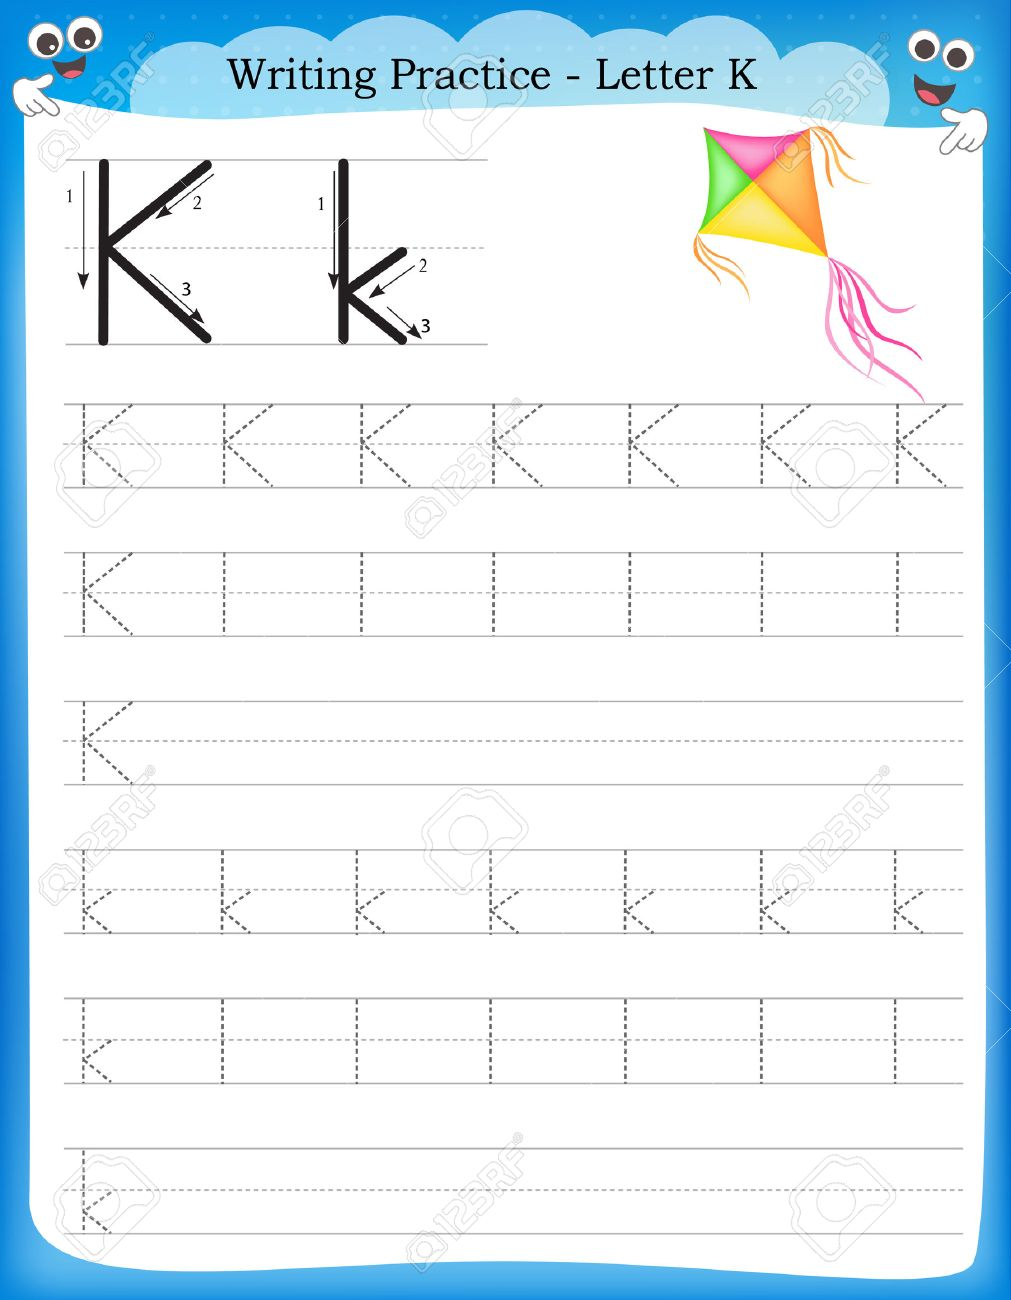 photo regarding Letter K Printable identify Composing teach letter K printable worksheet with clip artwork..